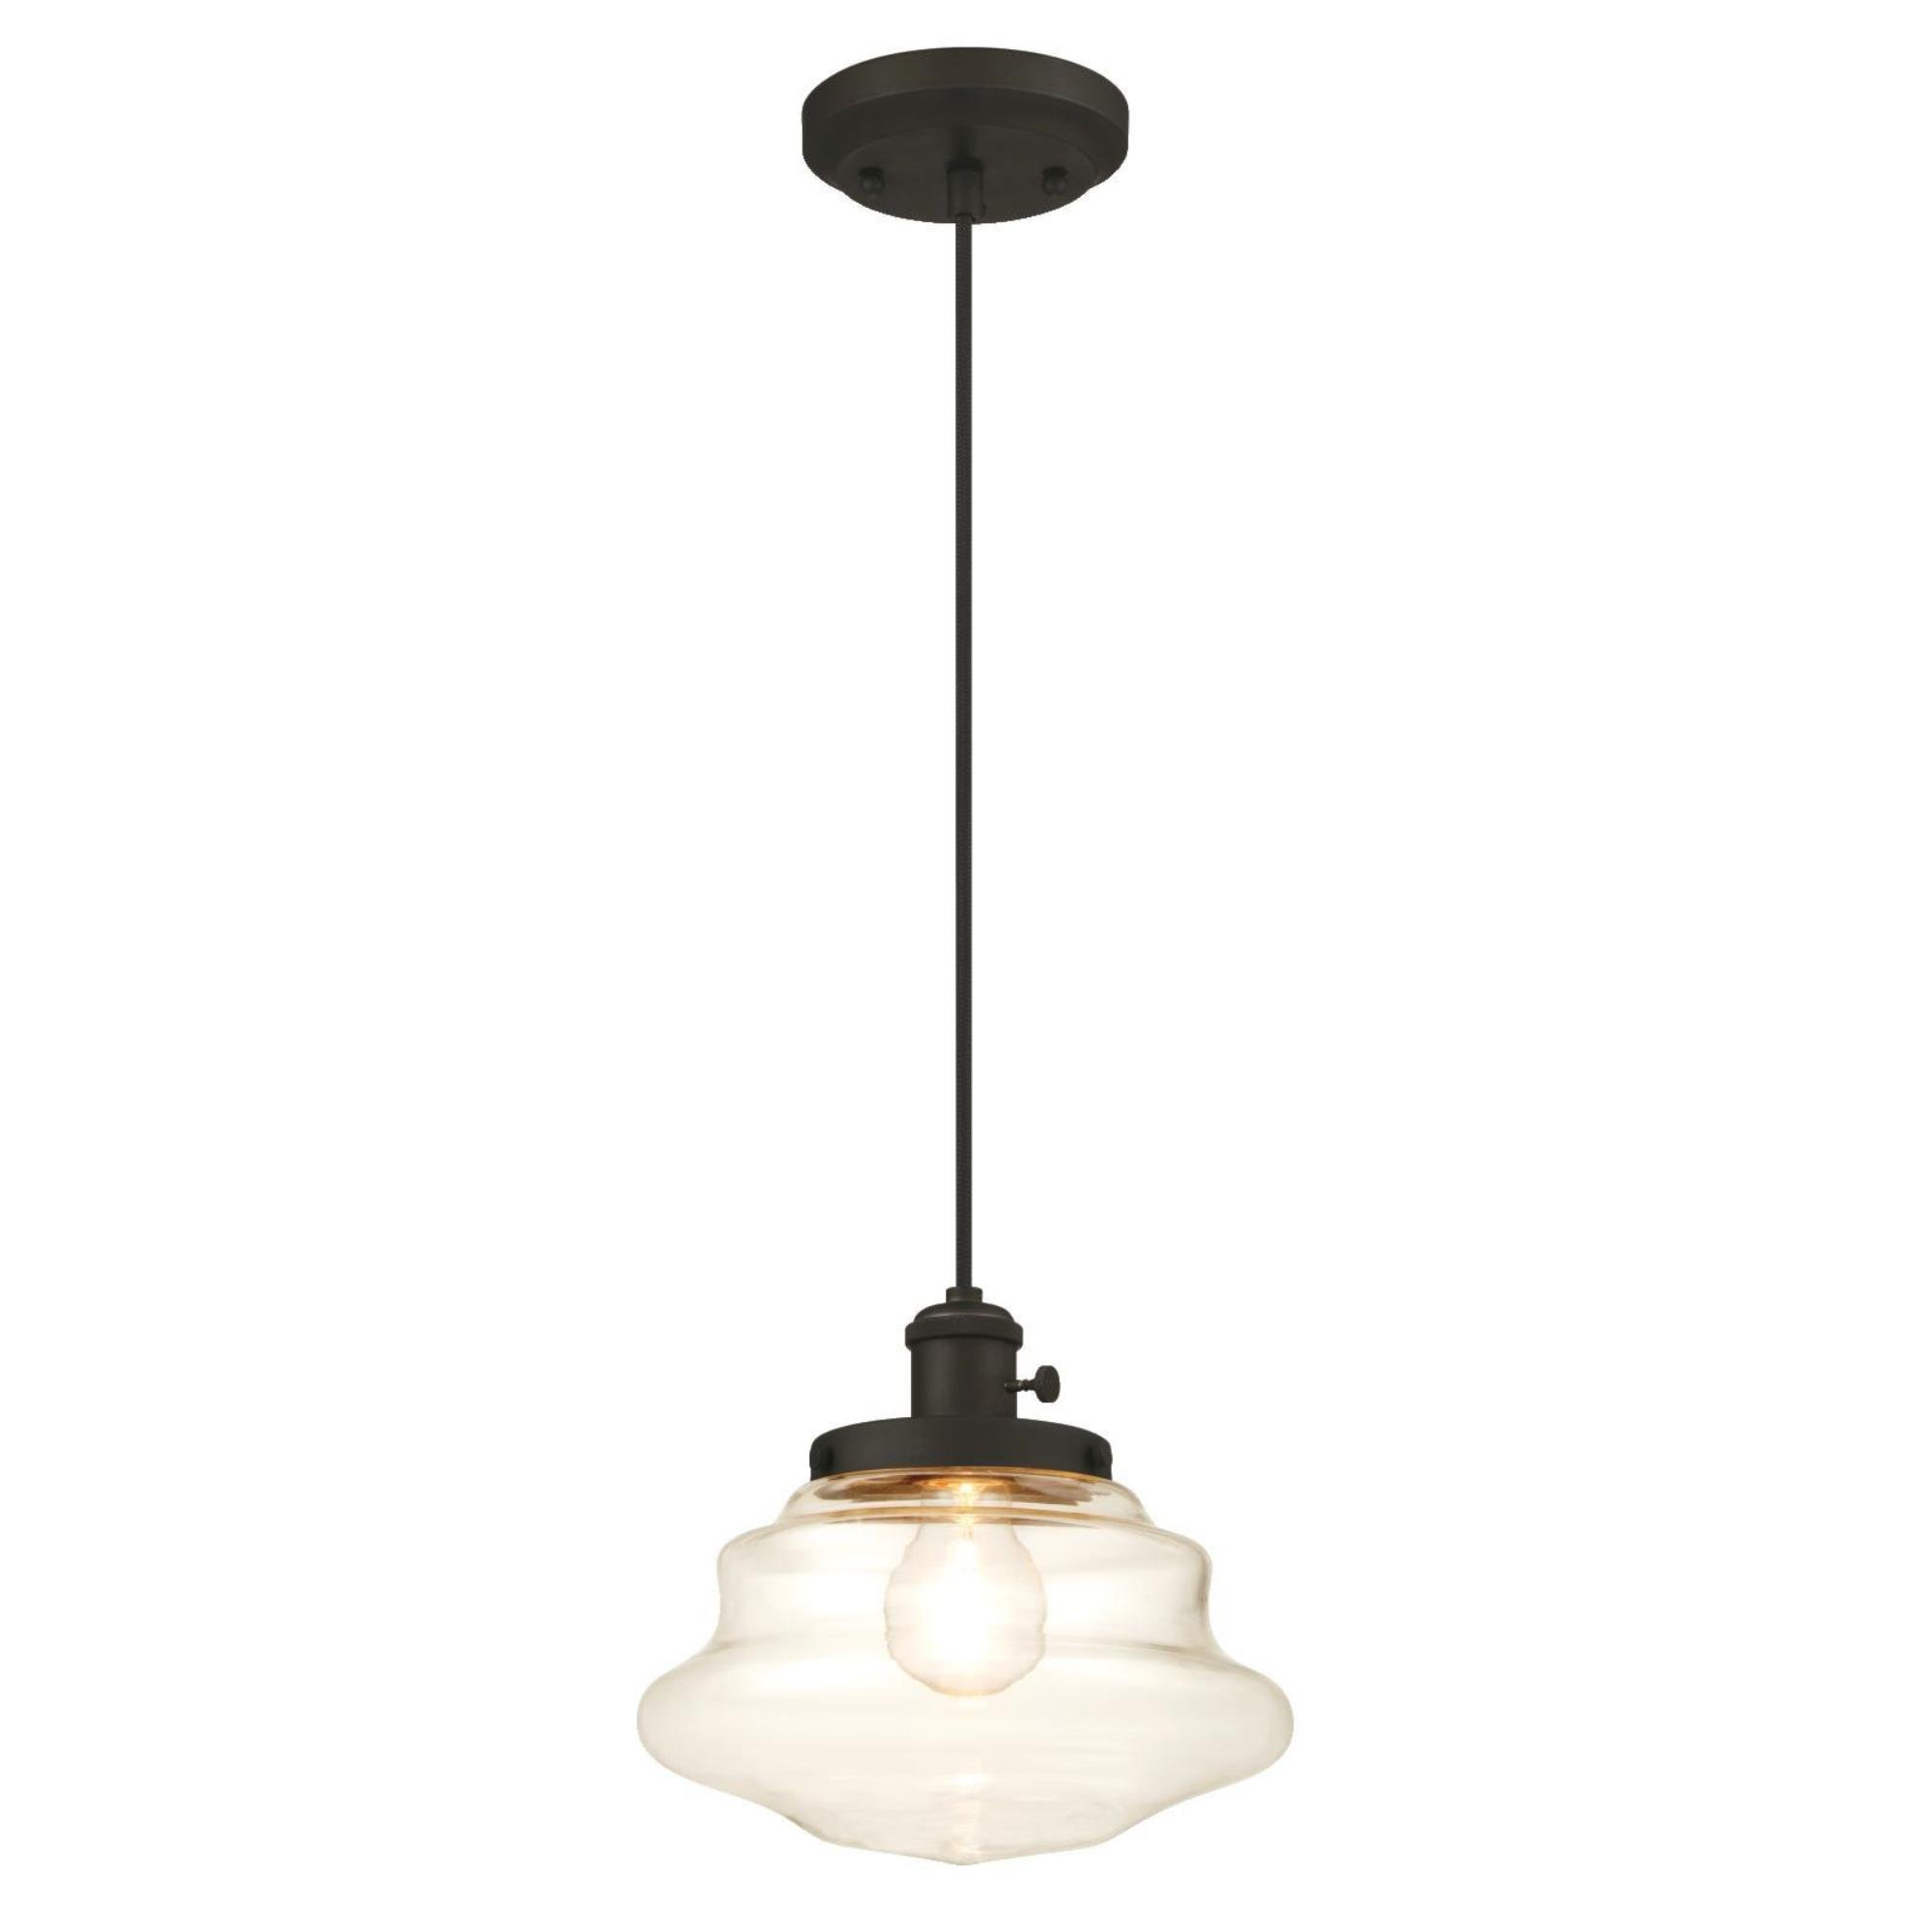 Westinghouse 6346000 One-Light Mini Pendant with Clear Glass, Oil Rubbed Bronze